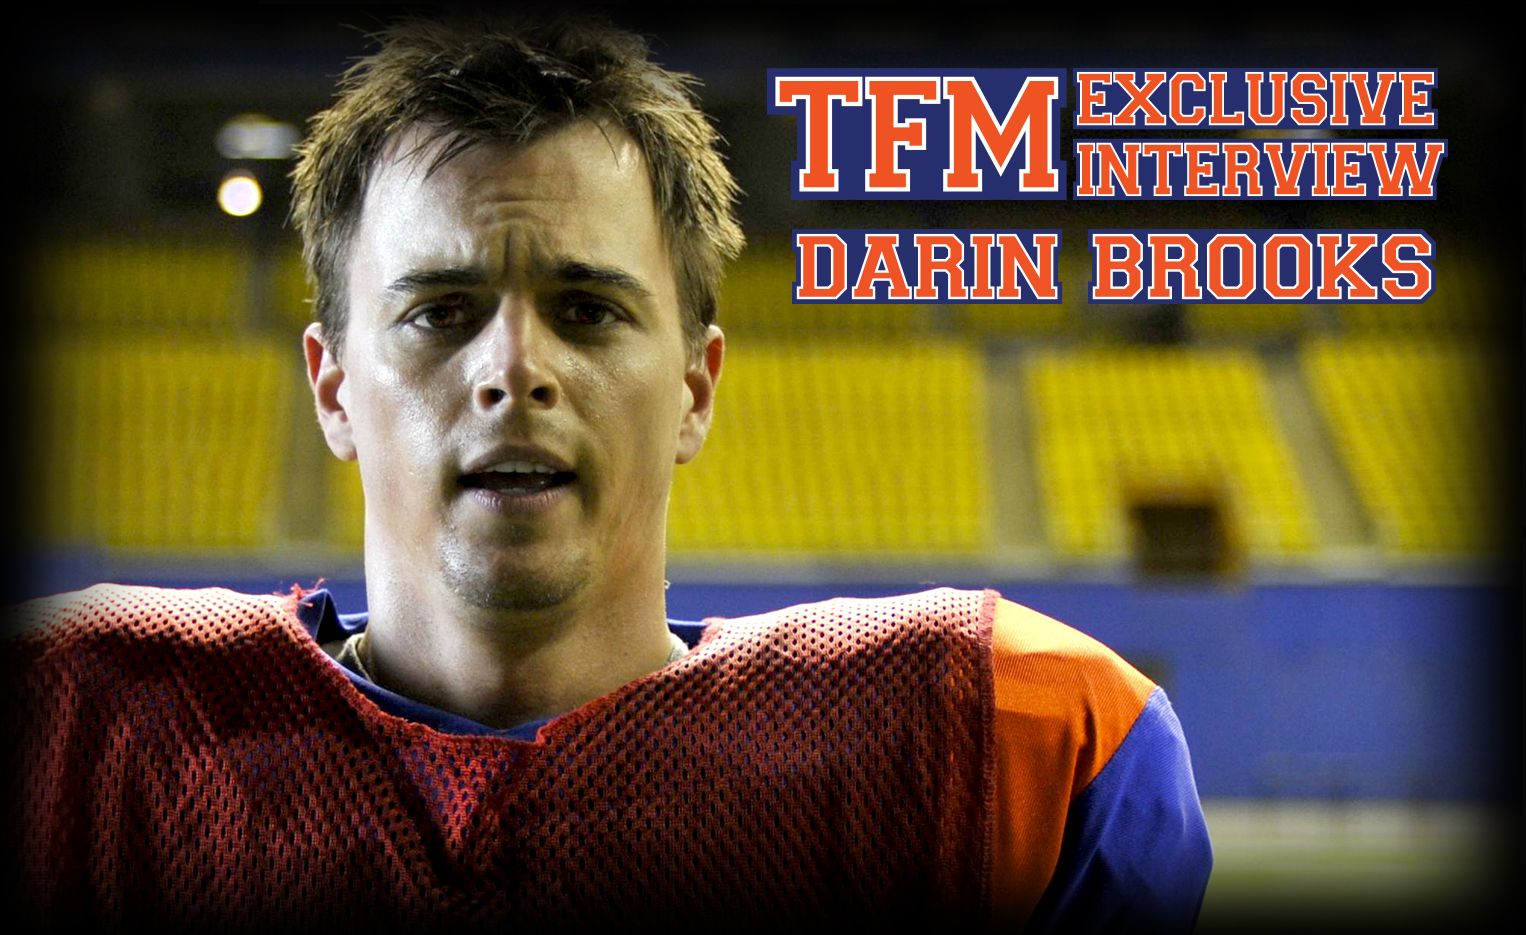 darin brooks instagramdarin brooks height, darin brooks fansite, darin brooks wife, darin brooks movies, darin brooks instagram, darin brooks, darin brooks twitter, darin brooks wiki, darin brooks wikipedia, darin brooks biography, darin brooks blue mountain state, darin brooks facebook, darin brooks net worth, darin brooks married, darin brooks and kelly kruger, darin brooks imdb, darin brooks days of our lives, darin brooks house crashers, darin brooks engaged, darin brooks and kim matula